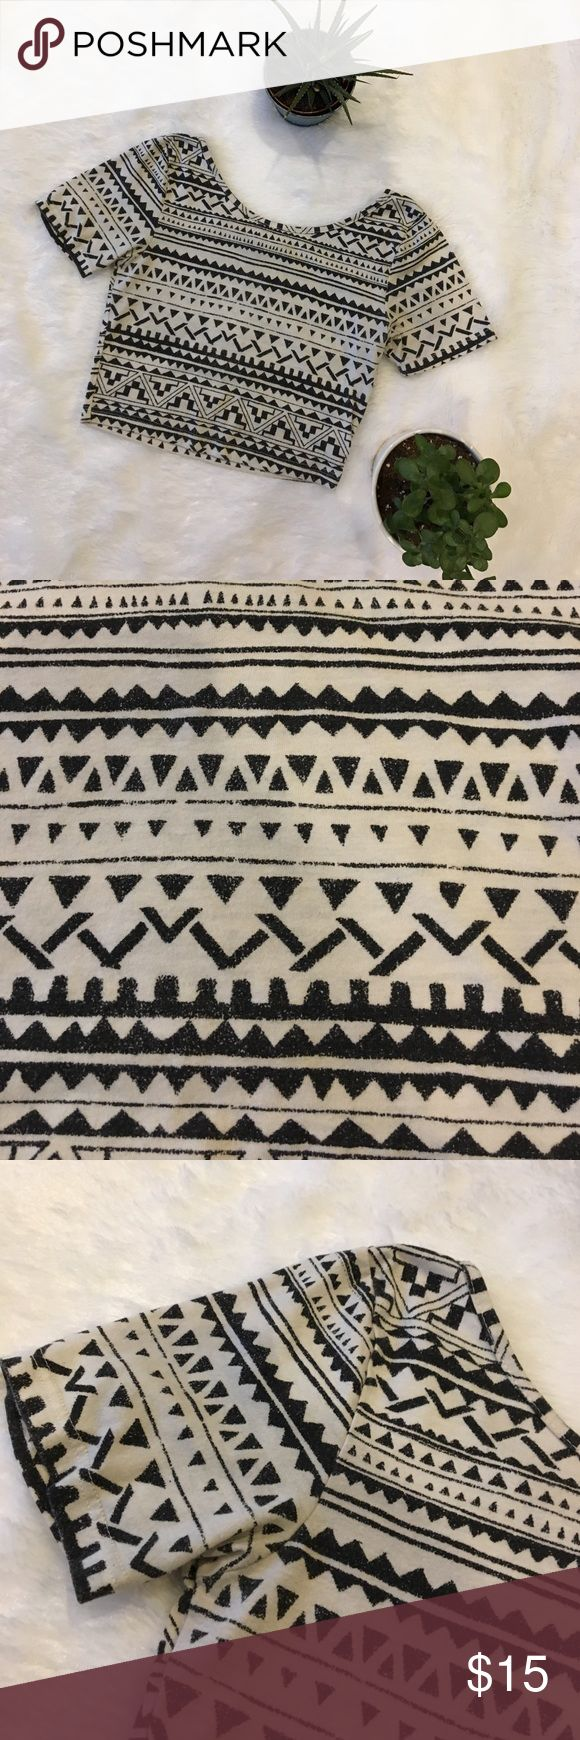 Aztec Crop Top Shirt Short Sleeve Short sleeve fitted Crop Top by Nollie! Women's Size XS. Cream/tan background with black Aztec pattern. In great condition!! Nollie Tops Crop Tops